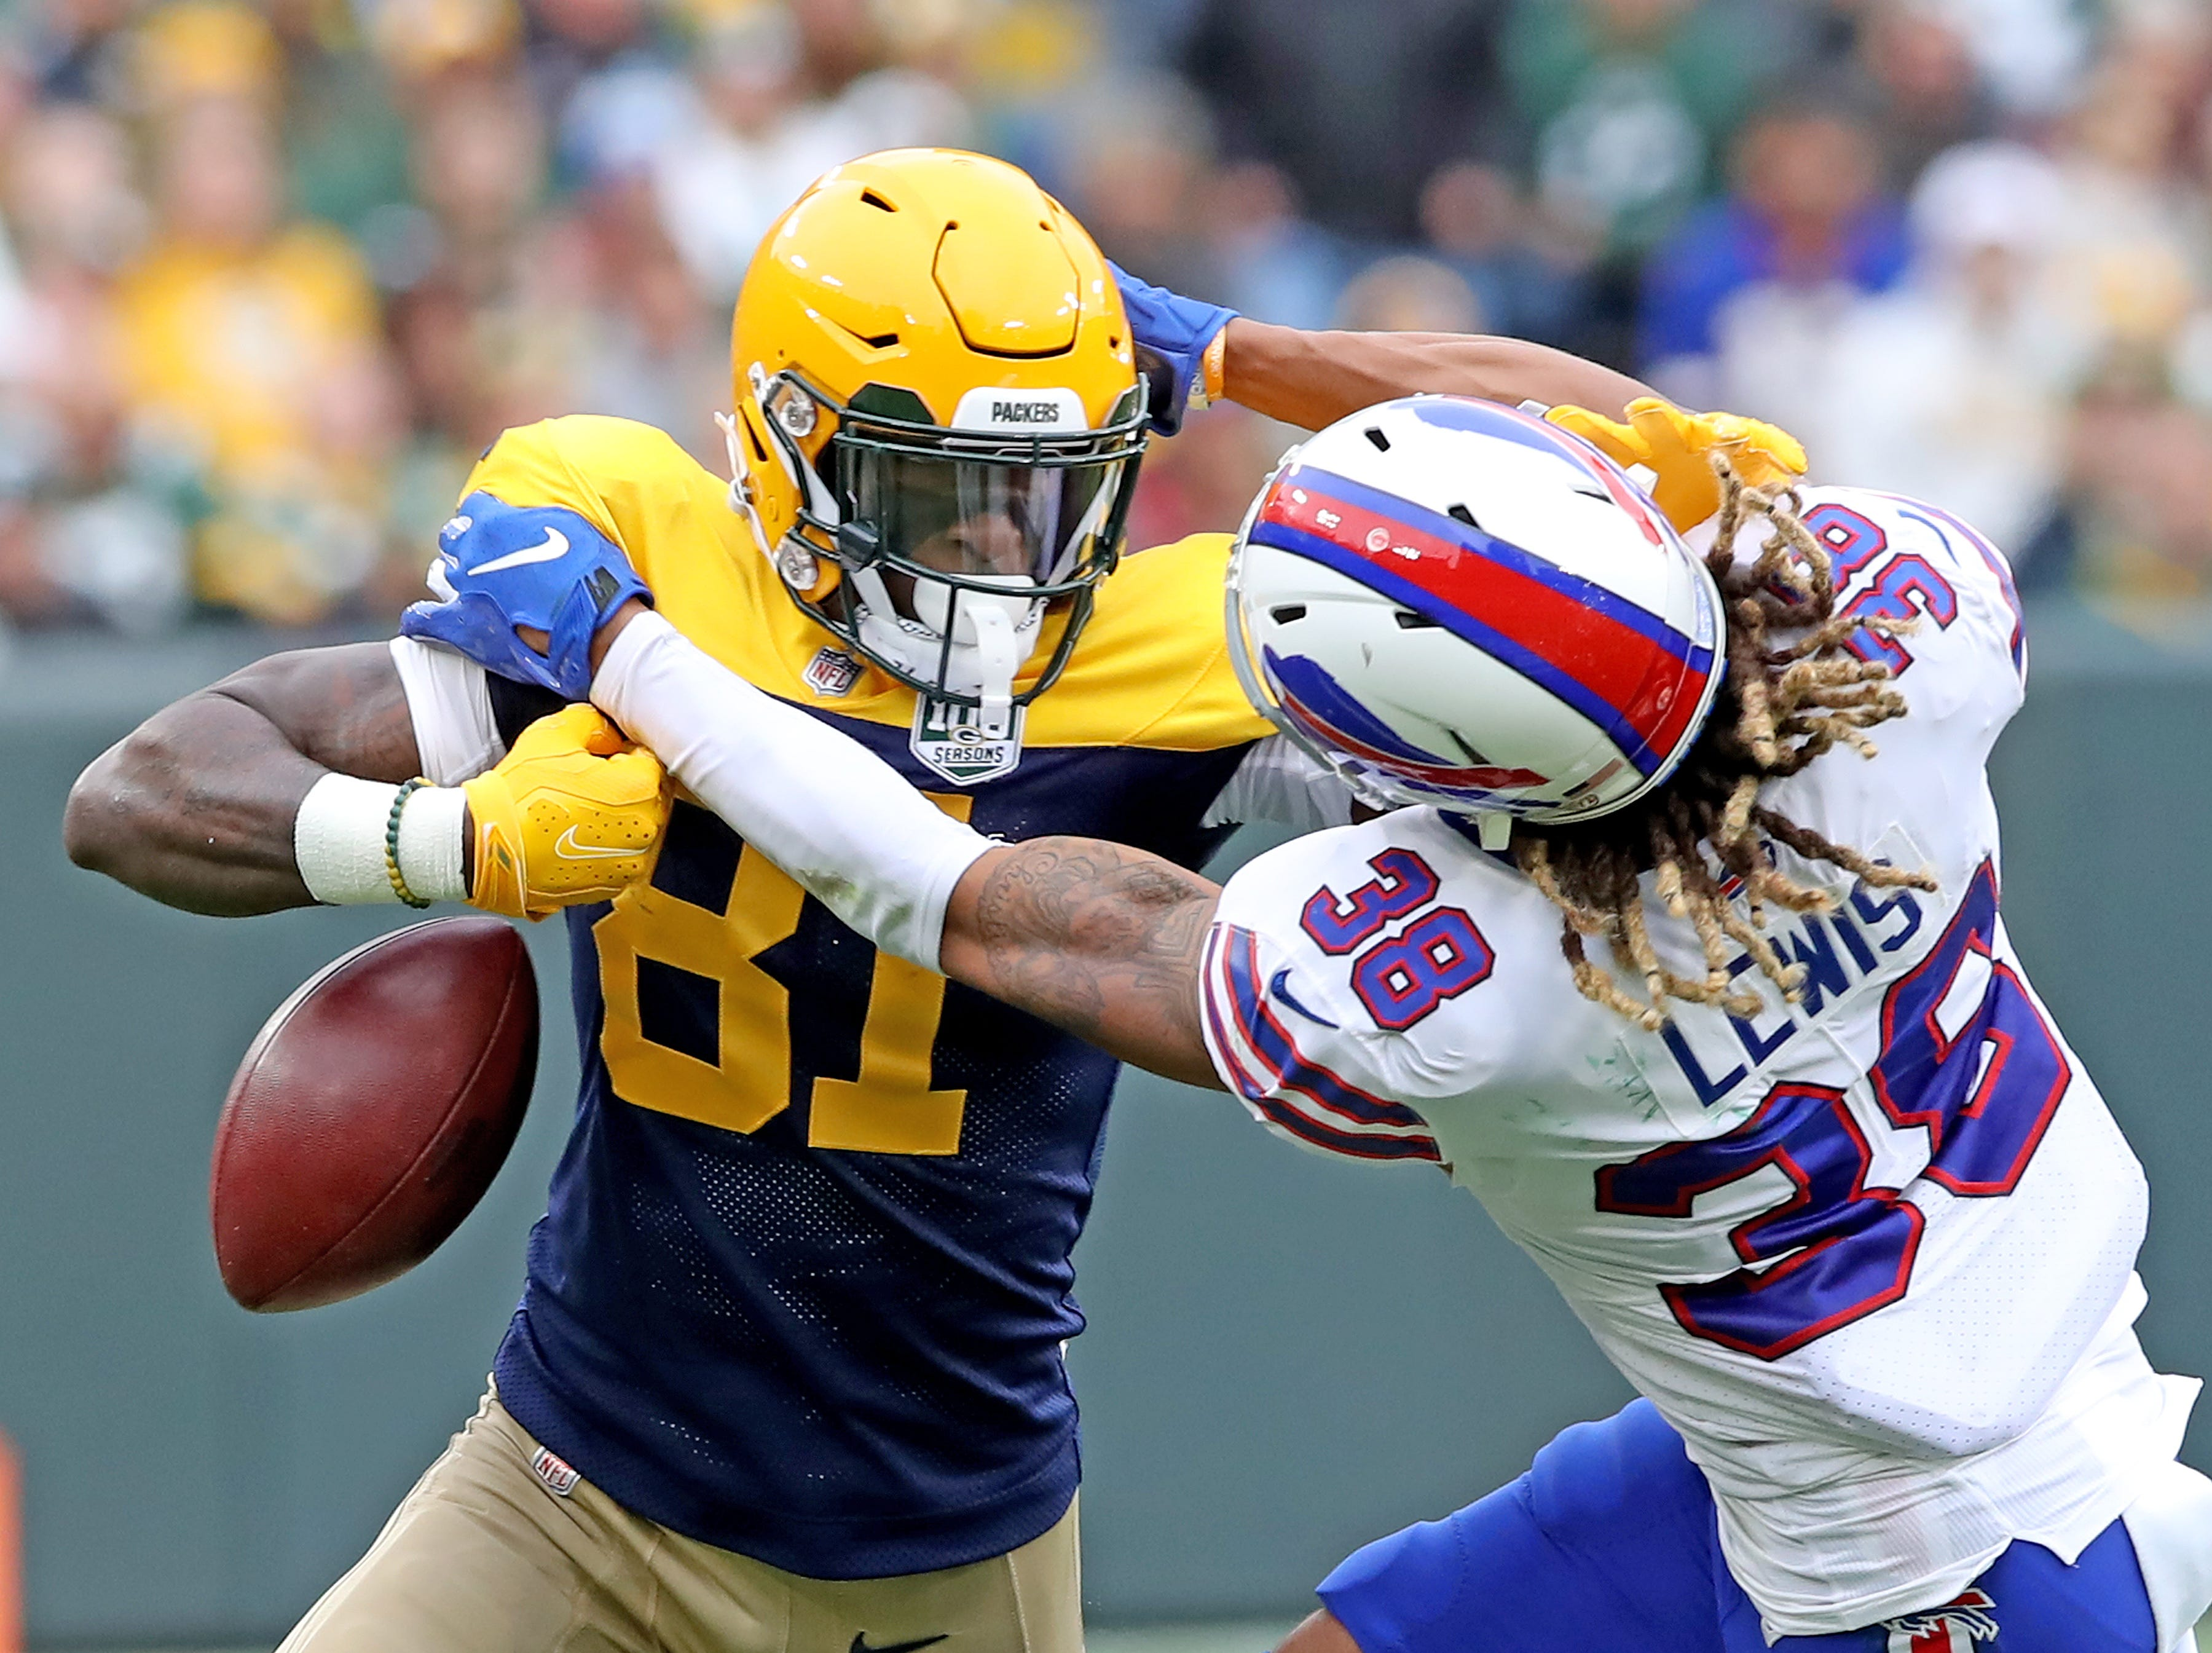 Green Bay Packers wide receiver Geronimo Allison (81) has the ball knocked loose by defensive back Ryan Lewis (38) against the Buffalo Bills Sunday September 30, 2018 at Lambeau Field in Green Bay, Wis.